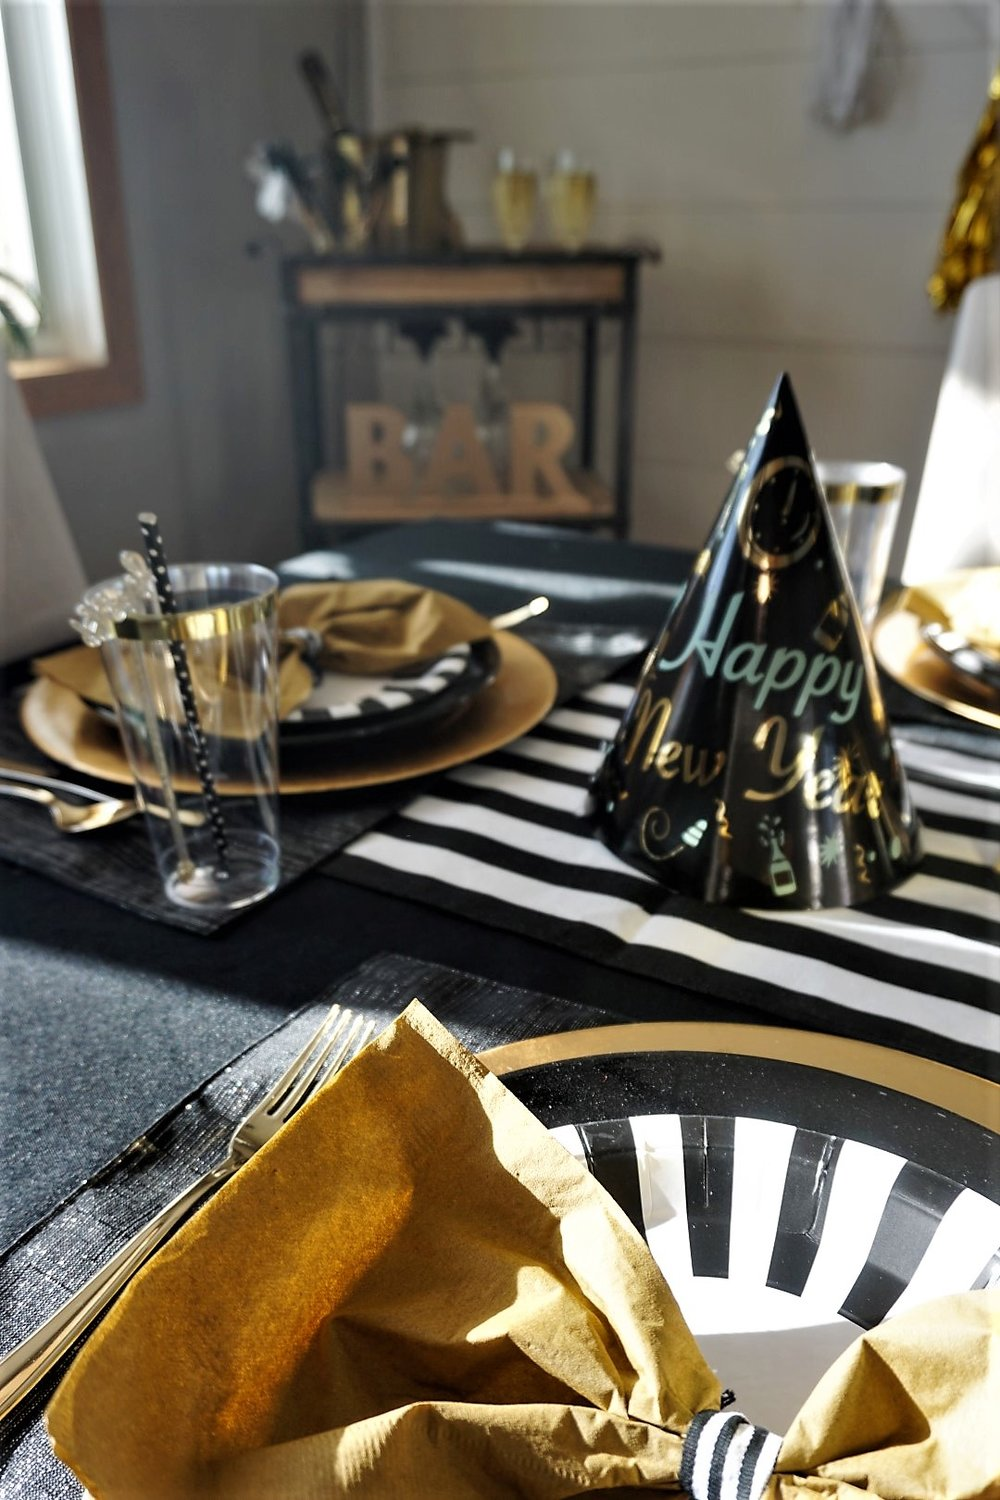 Black and gold makes your New Year's Eve table pop.